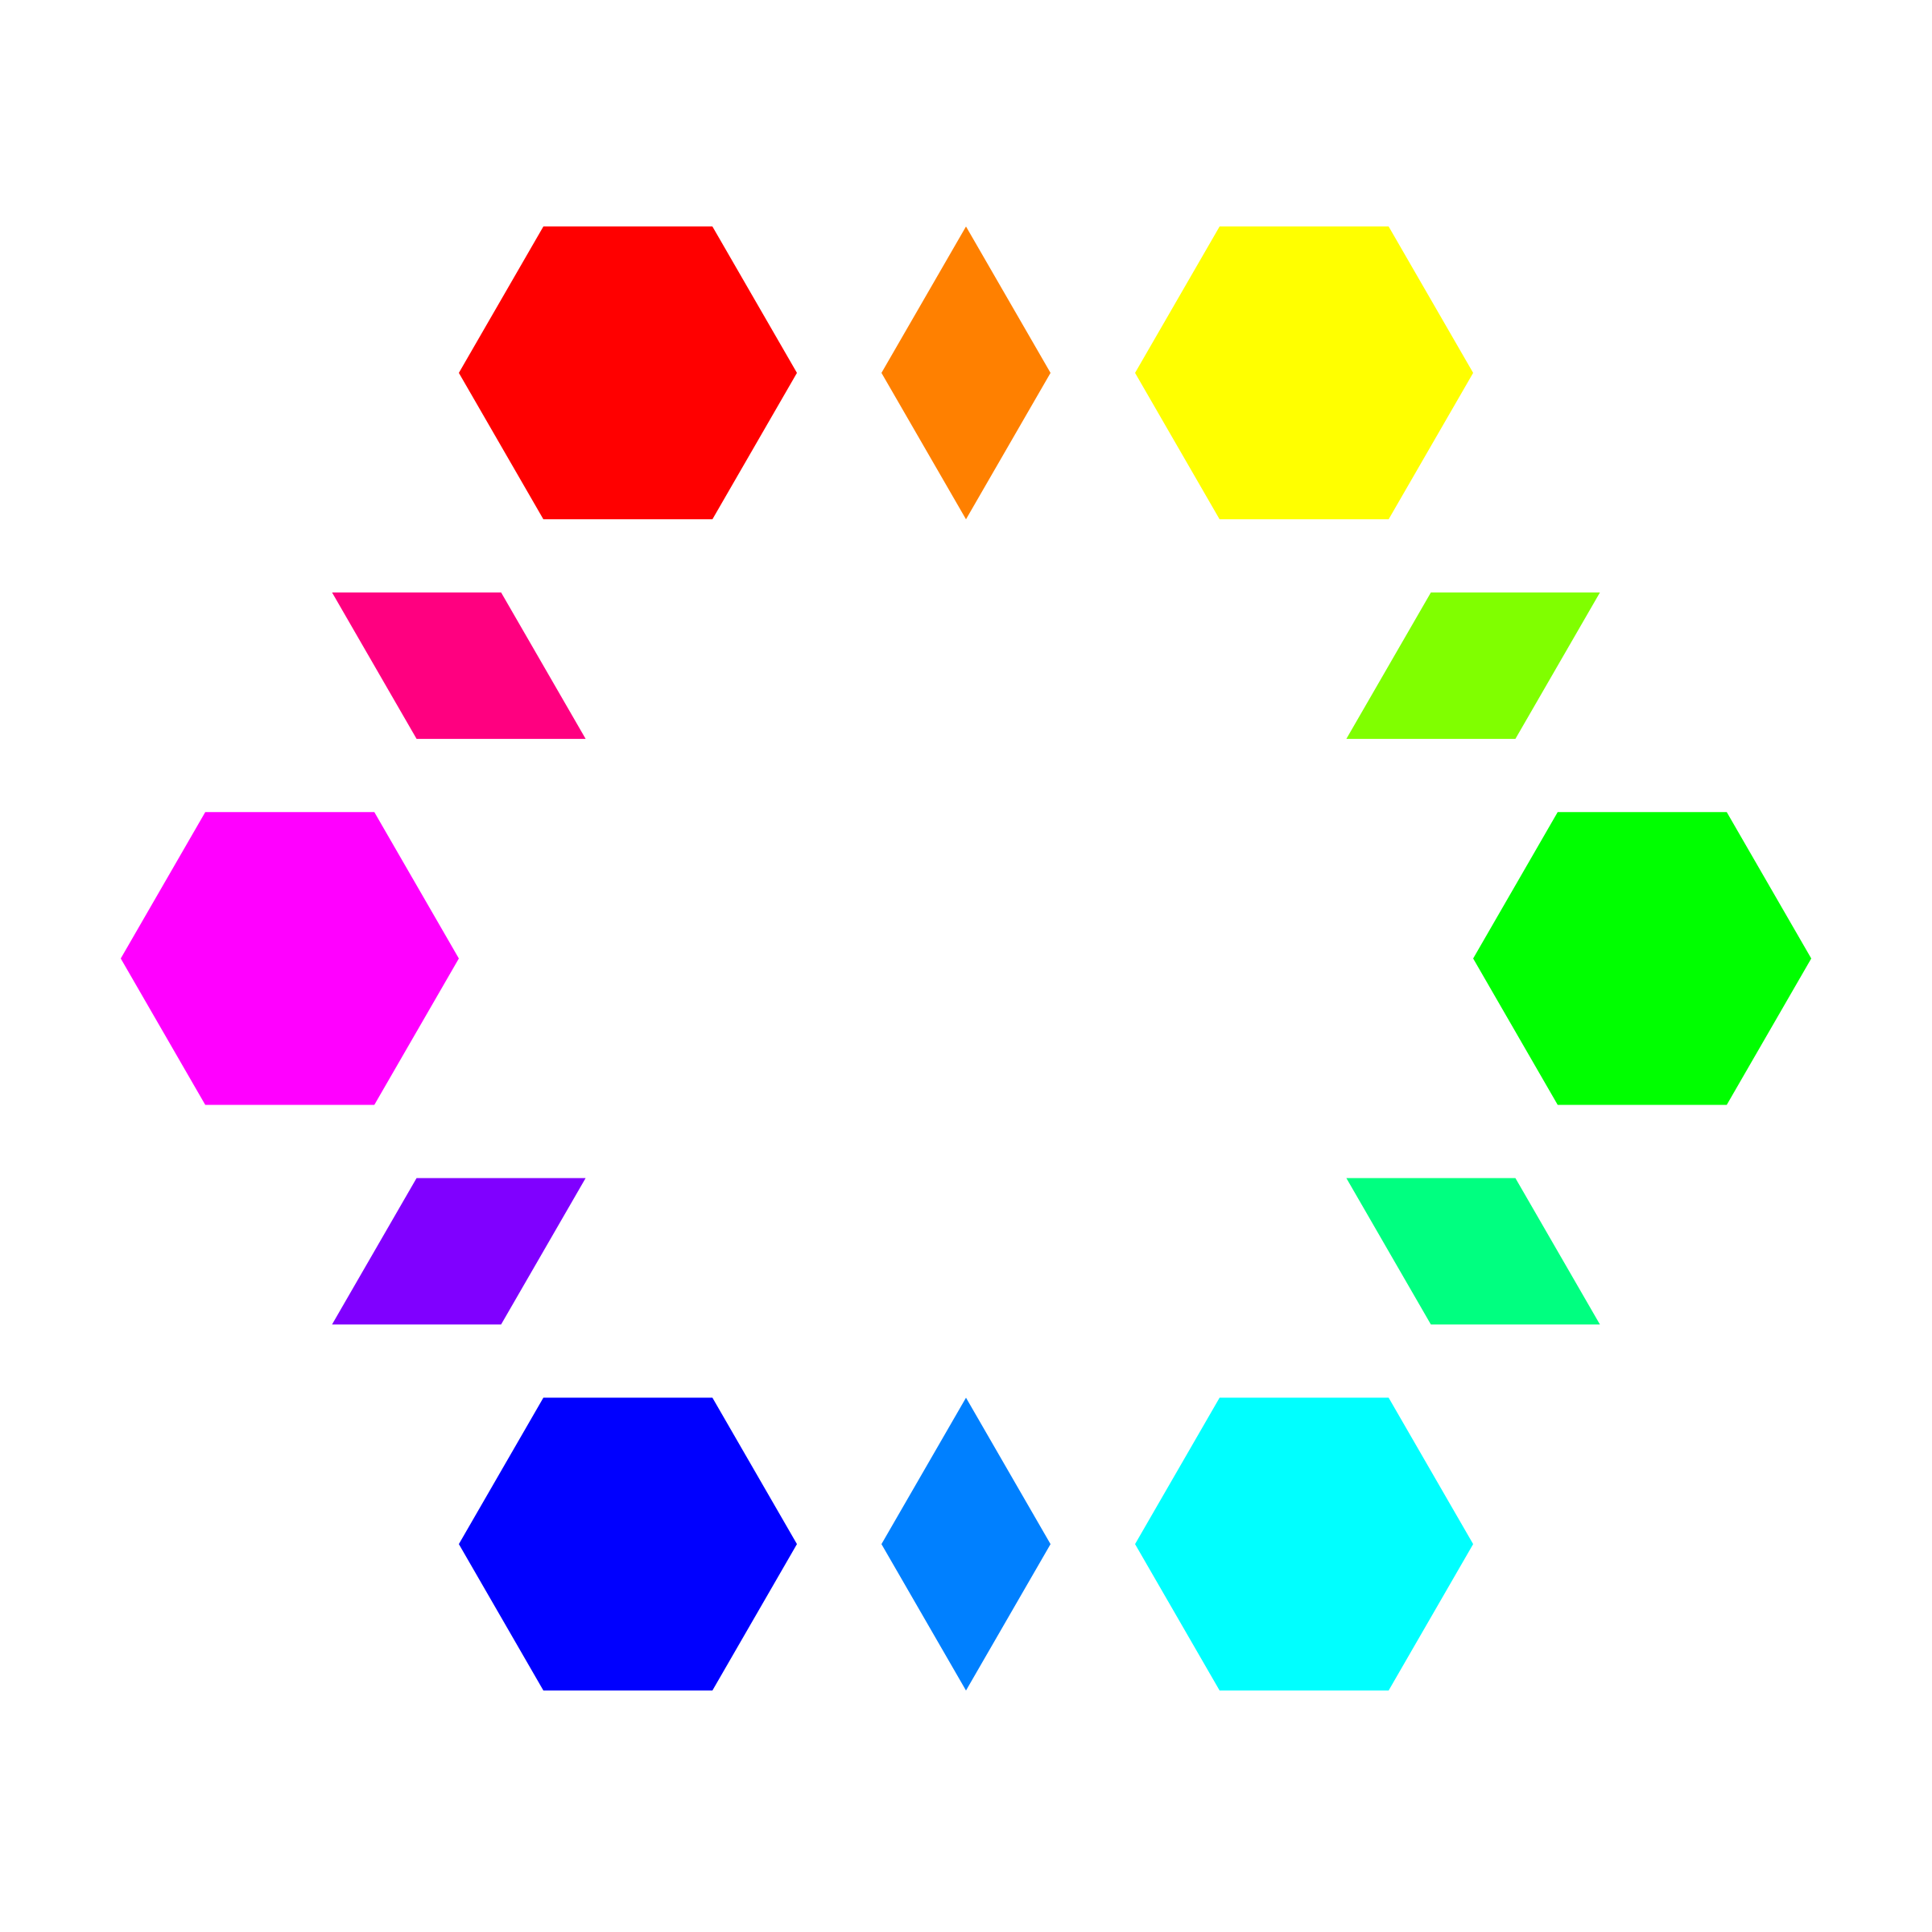 6 hexagons 6 diamonds by 10binary